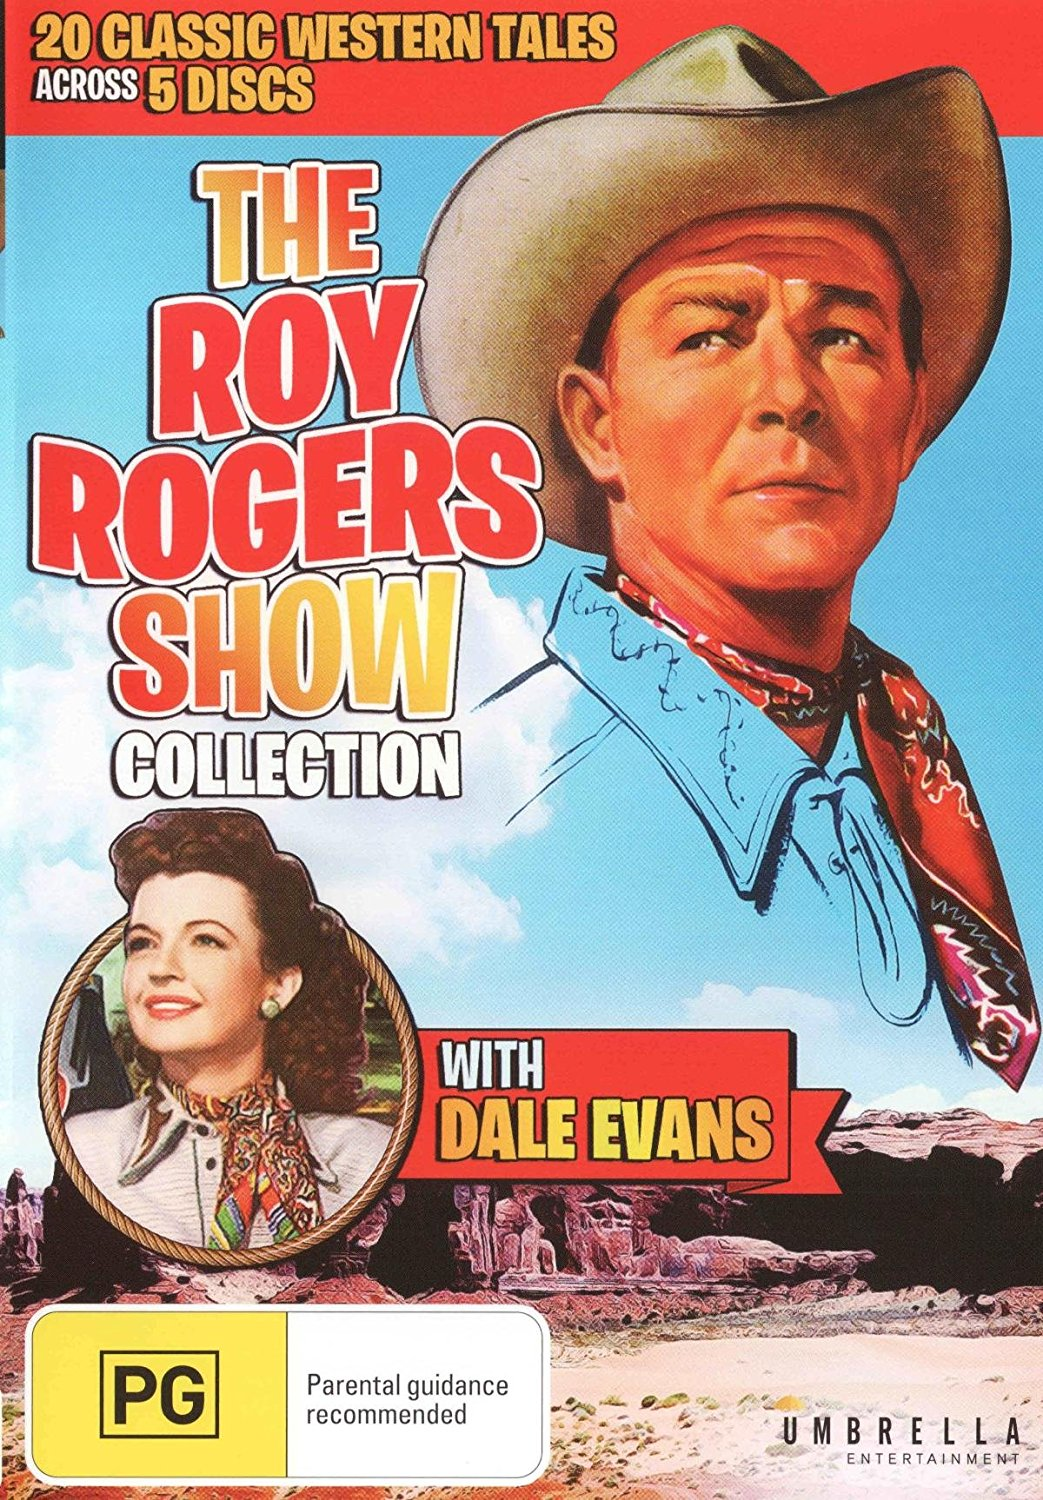 The Roy Rogers Show with Dale Evans